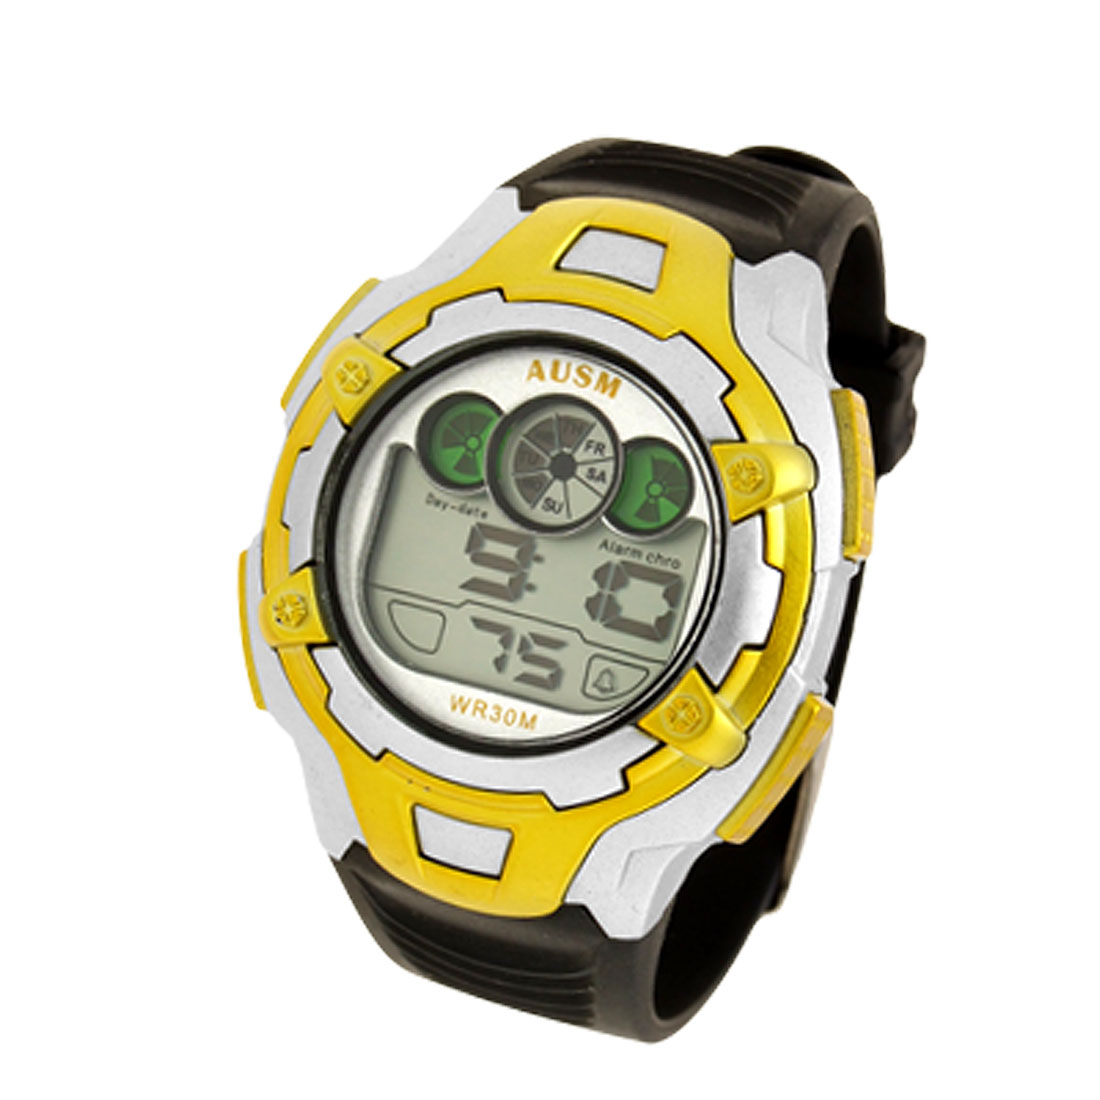 Fashion Multifunctional Round Plastic Watchband Electronic Sports Wrist Watch